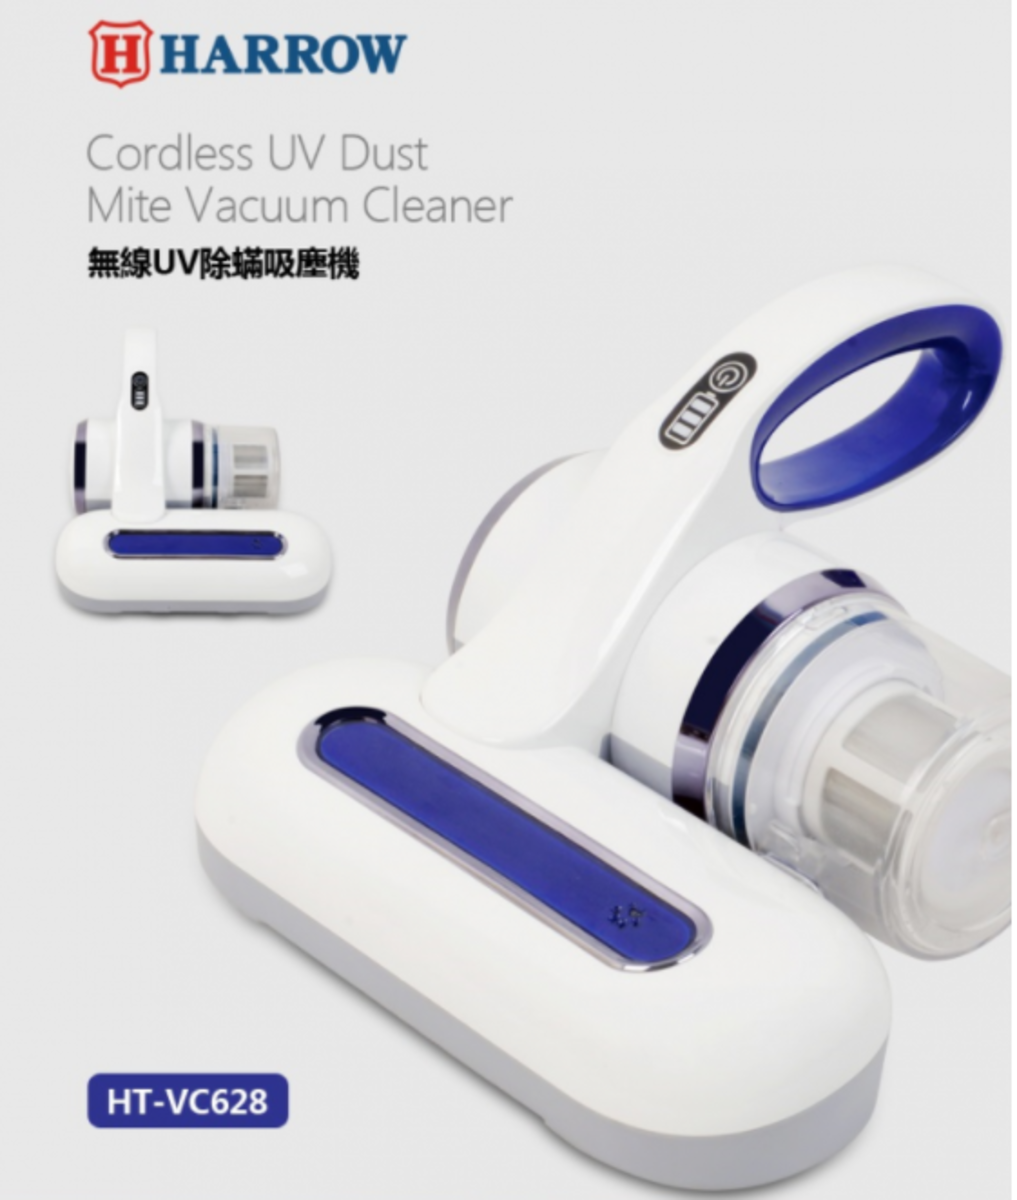 HT-VC628 Wireless UV Dust Mite Vacuum Cleaner